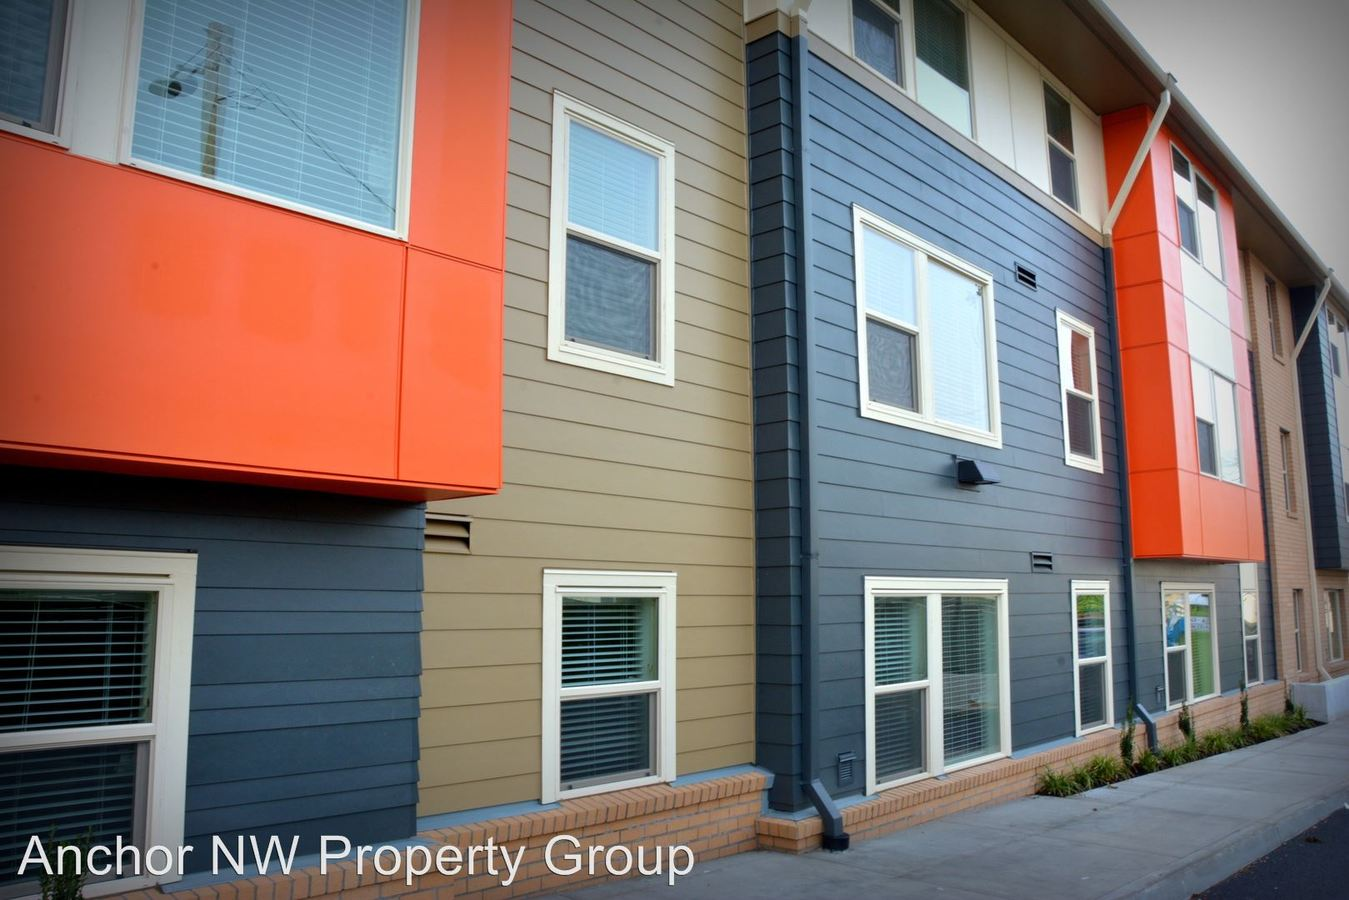 2 Bedrooms 1 Bathroom Apartment for rent at 700 Se Cesar E Chavez Blvd. in Portland, OR